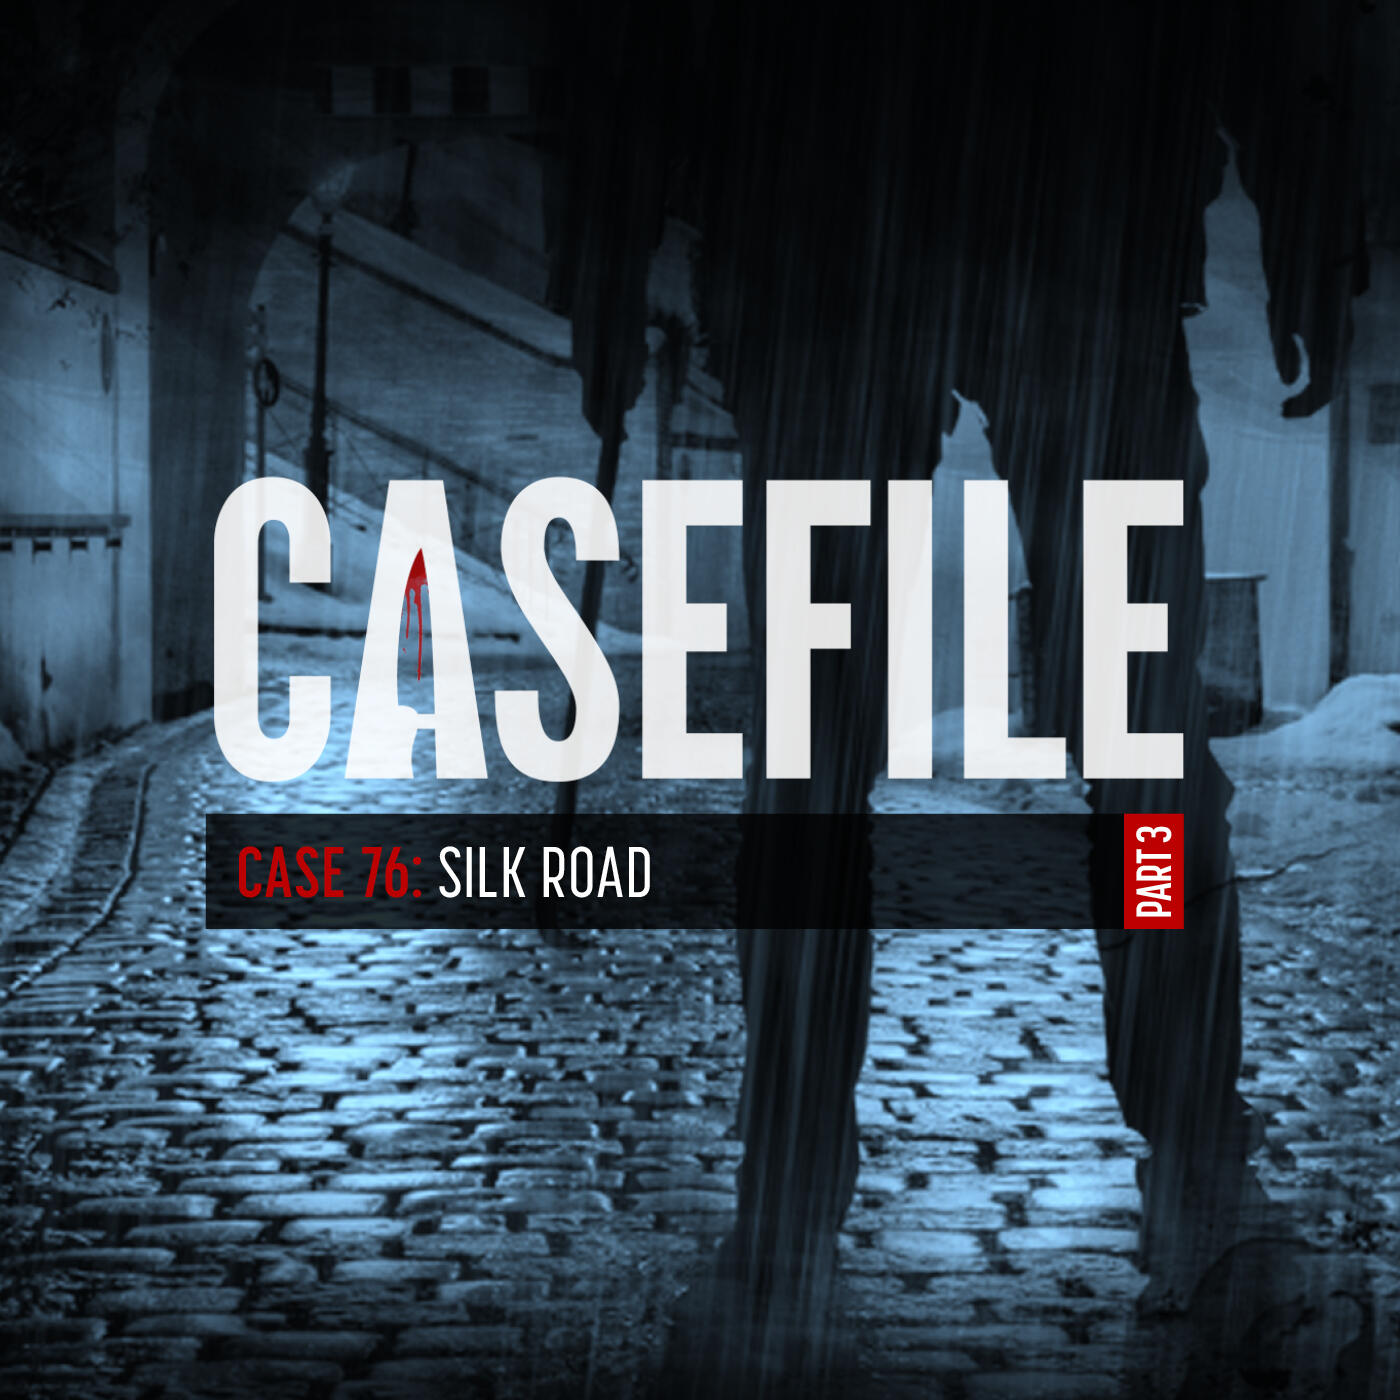 Case 76: Silk Road (Part 3)